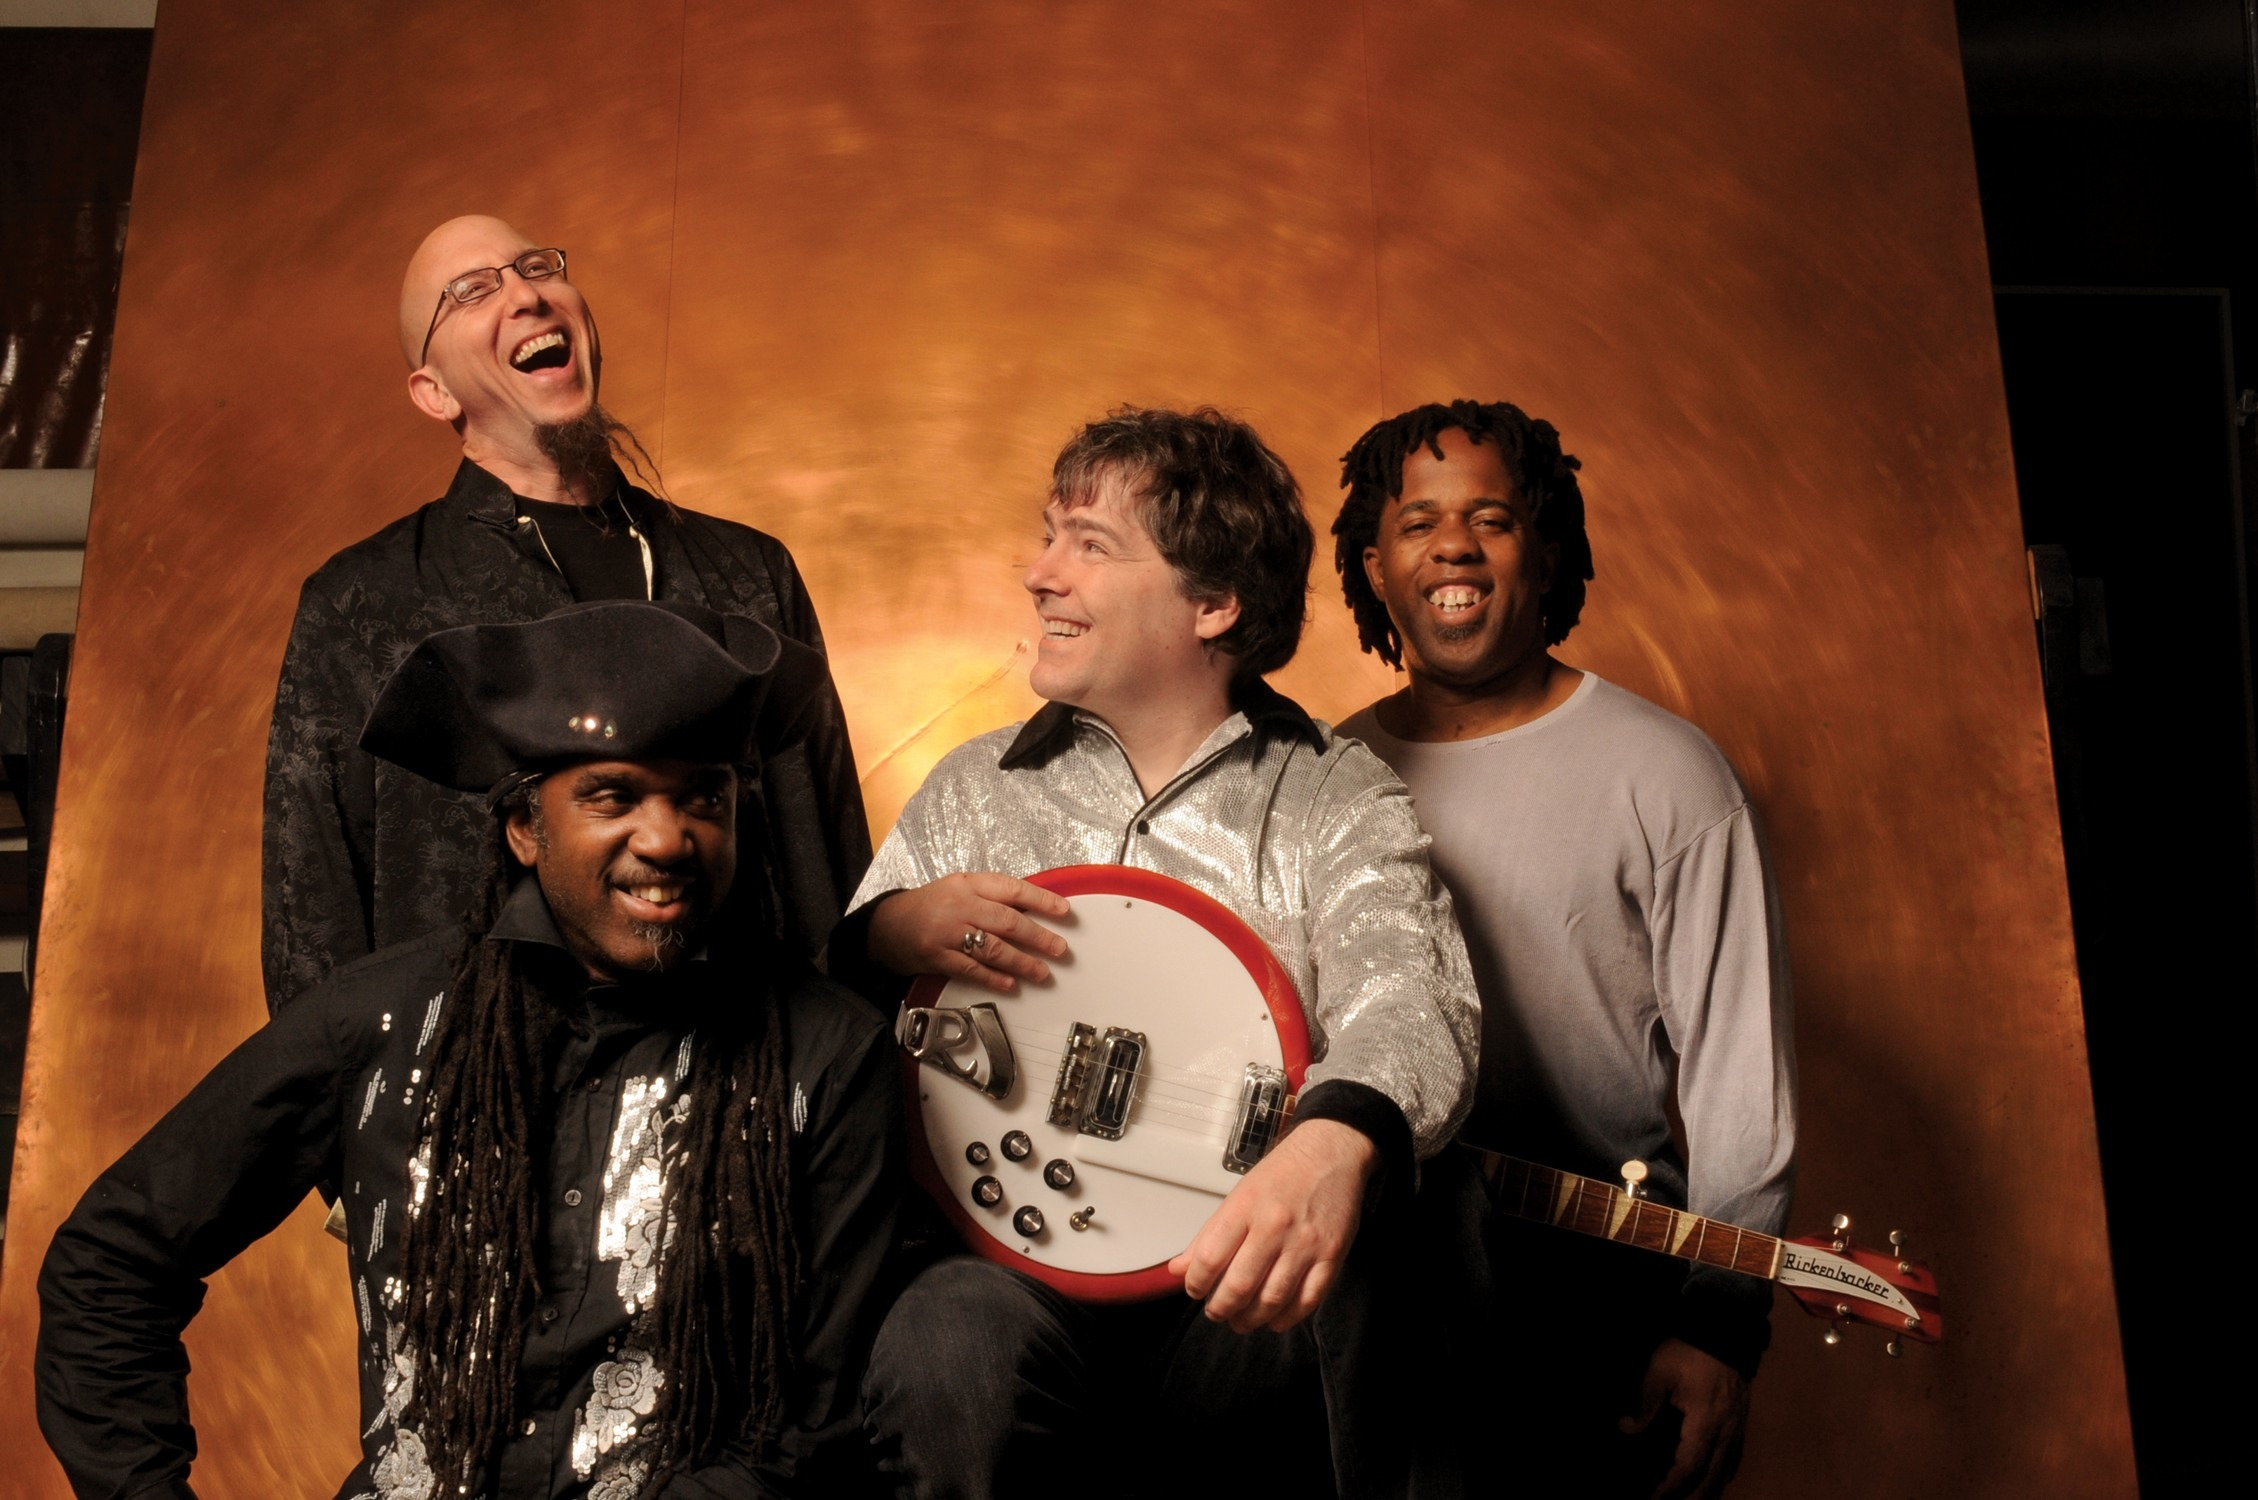 Bela Fleck and The Flecktones picture